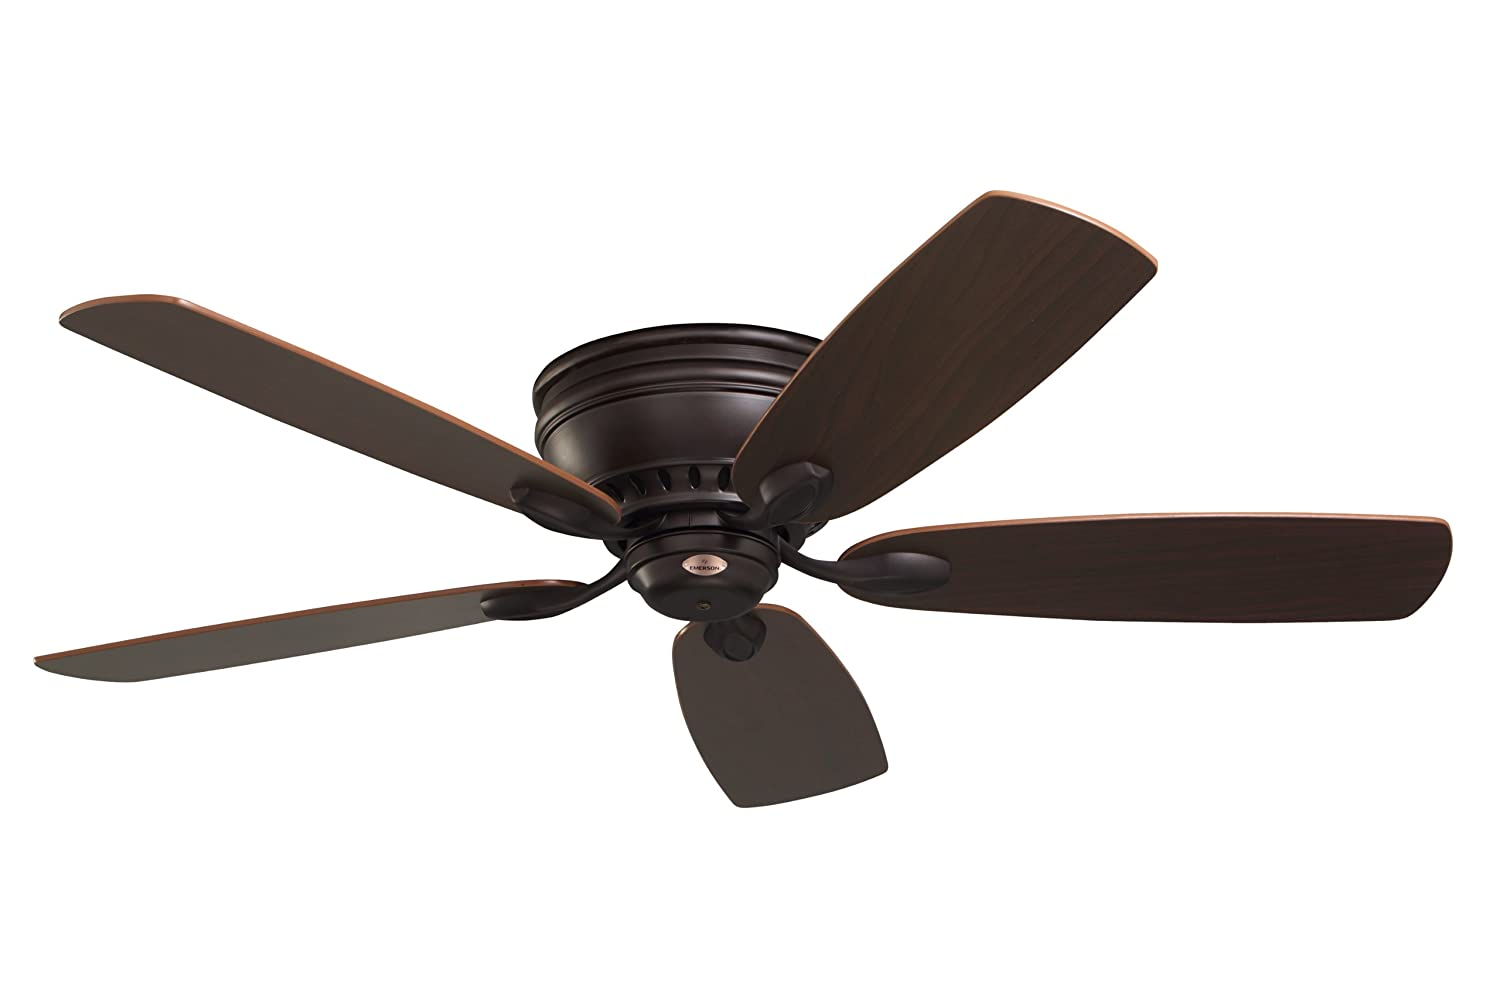 Emerson ceiling fans cf905orb prima snugger 52 inch low profile emerson ceiling fans cf905orb prima snugger 52 inch low profile ceiling fan with wall control light kit adaptable oil rubbed bronze finish flush mount aloadofball Image collections